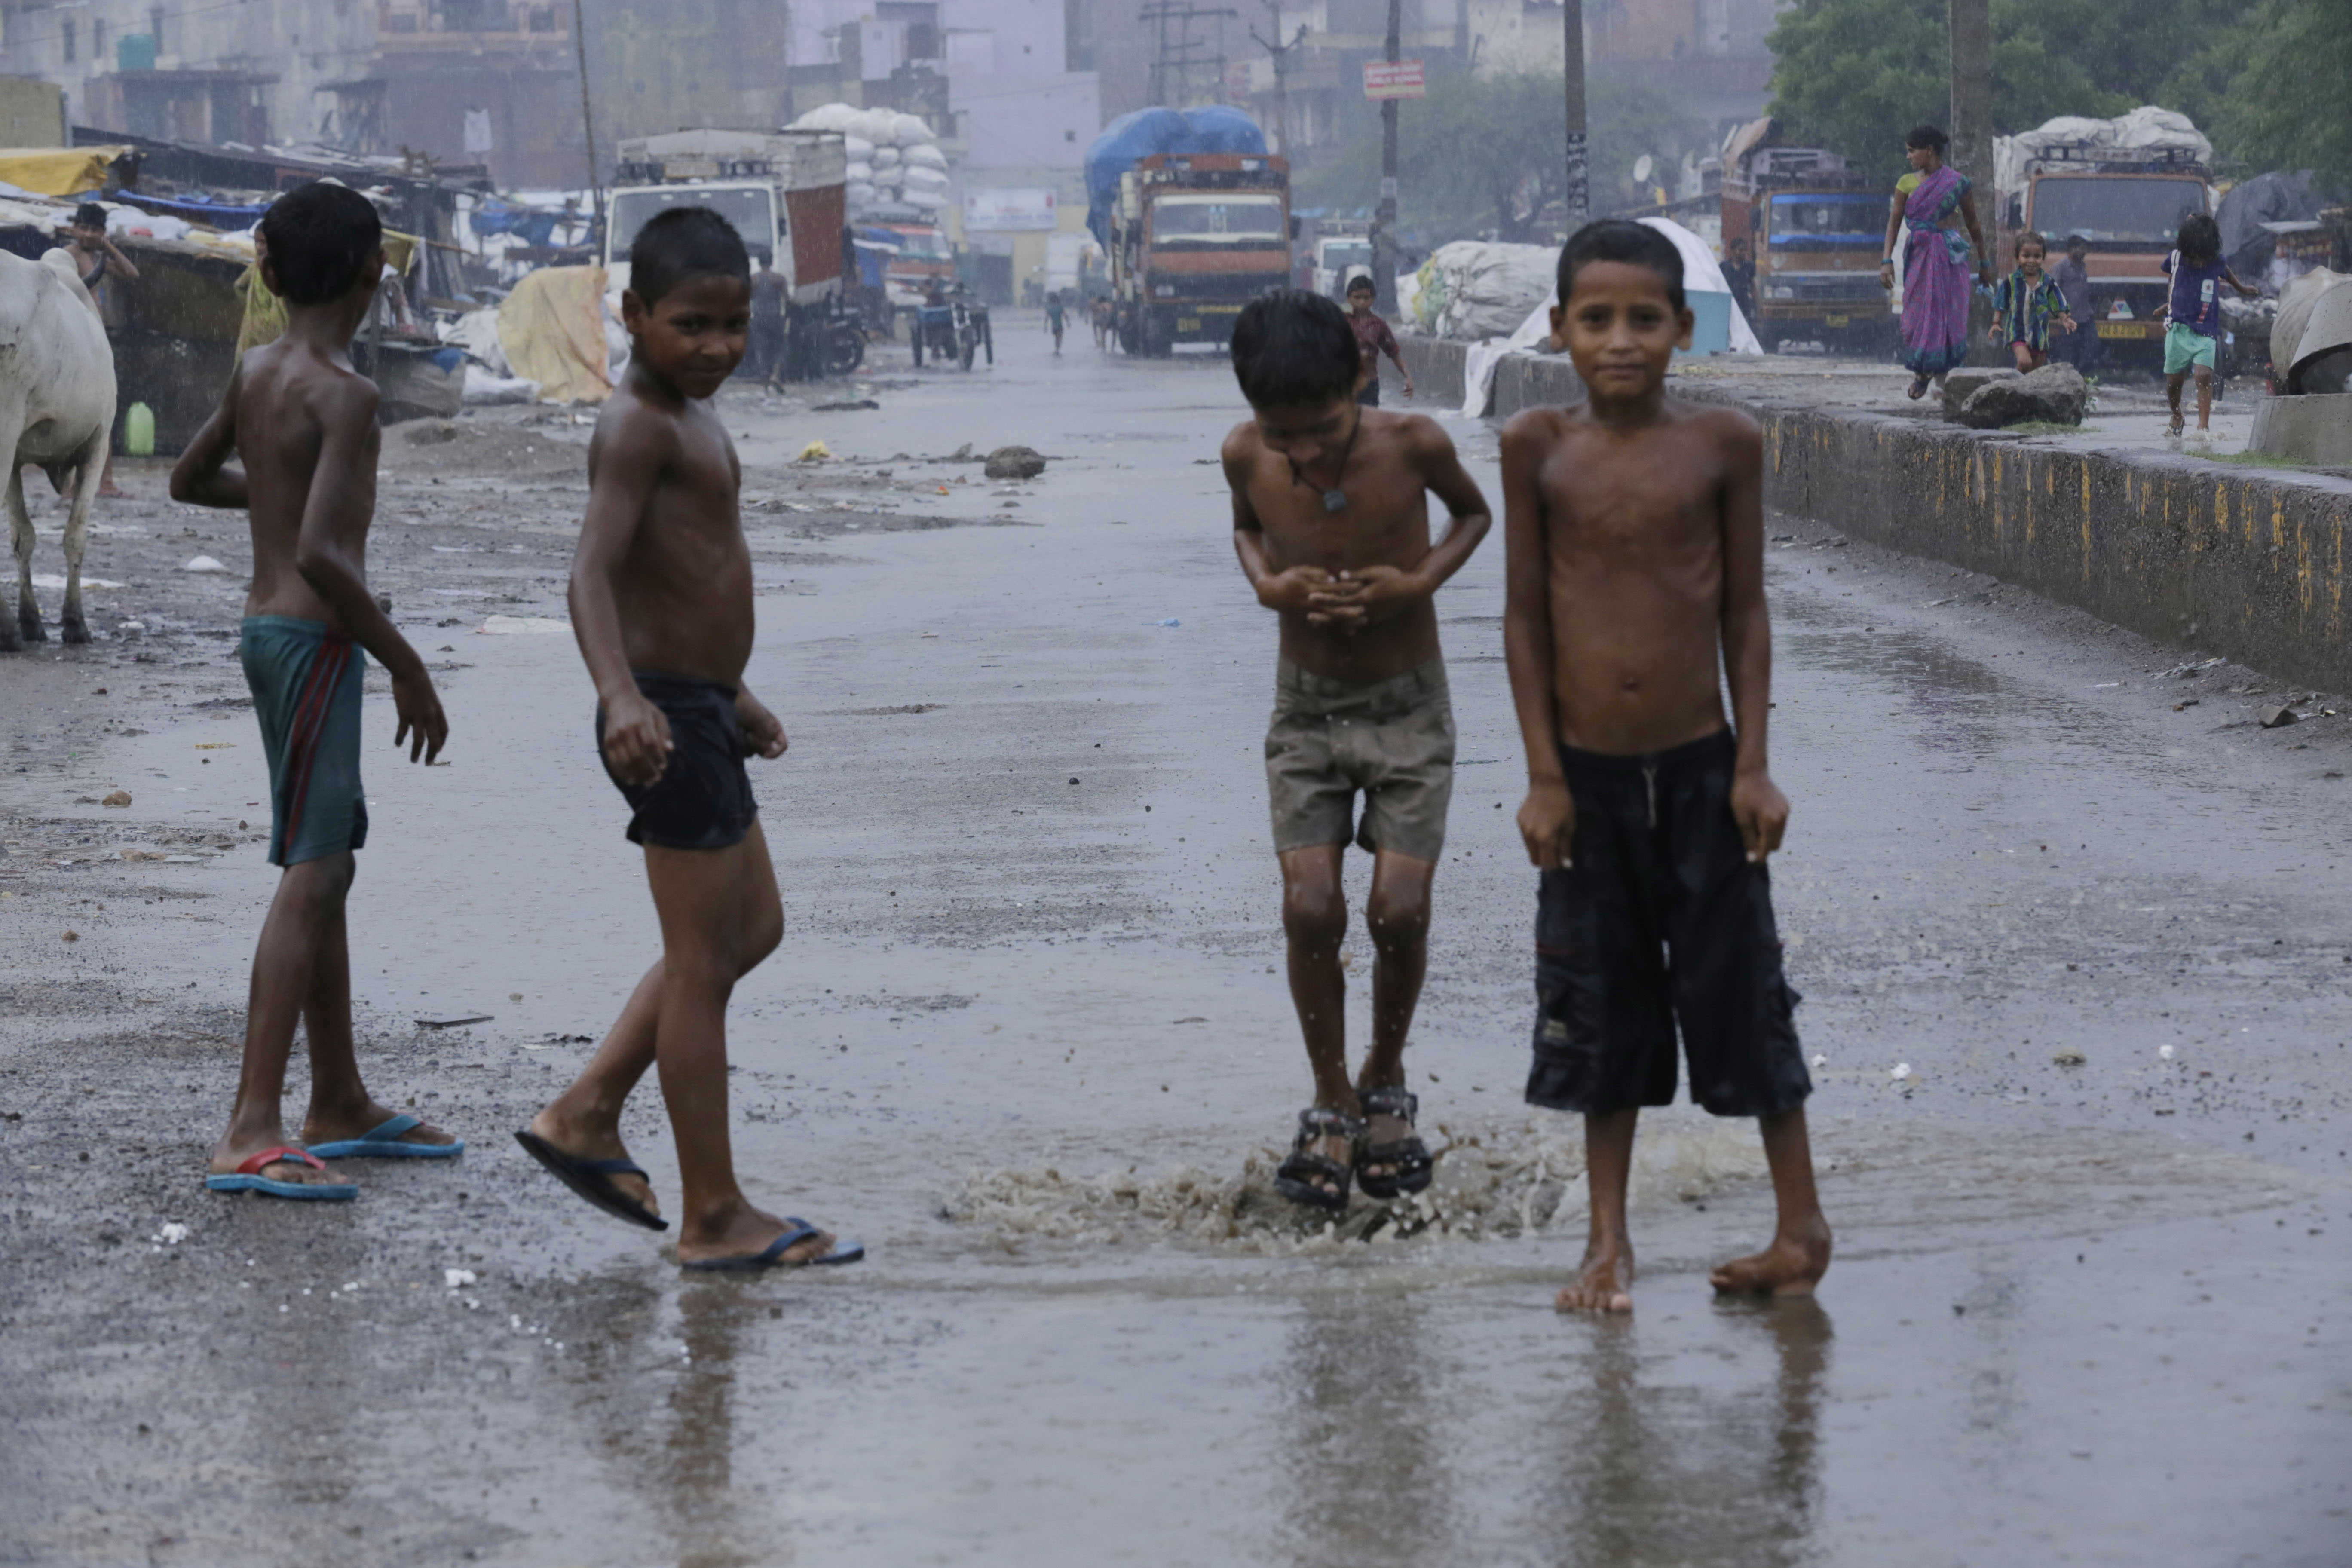 Urban children in slums more vulnerable to health risks, says report